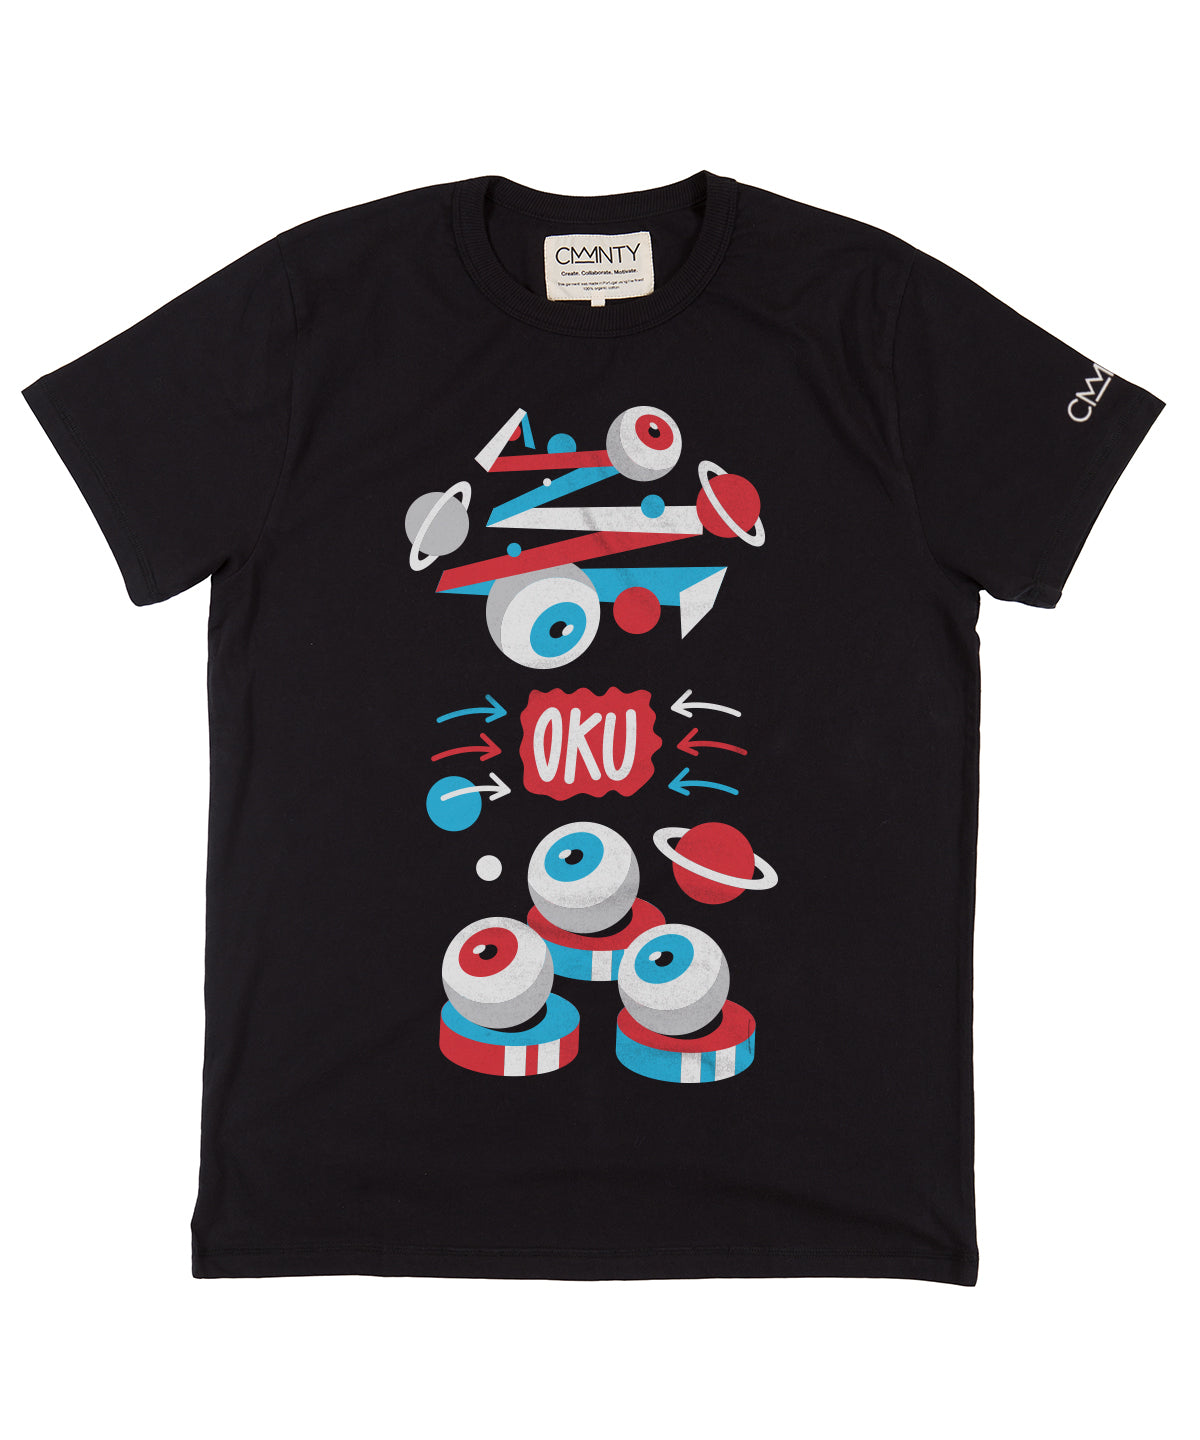 David Oku 'Magic' T-Shirt Black